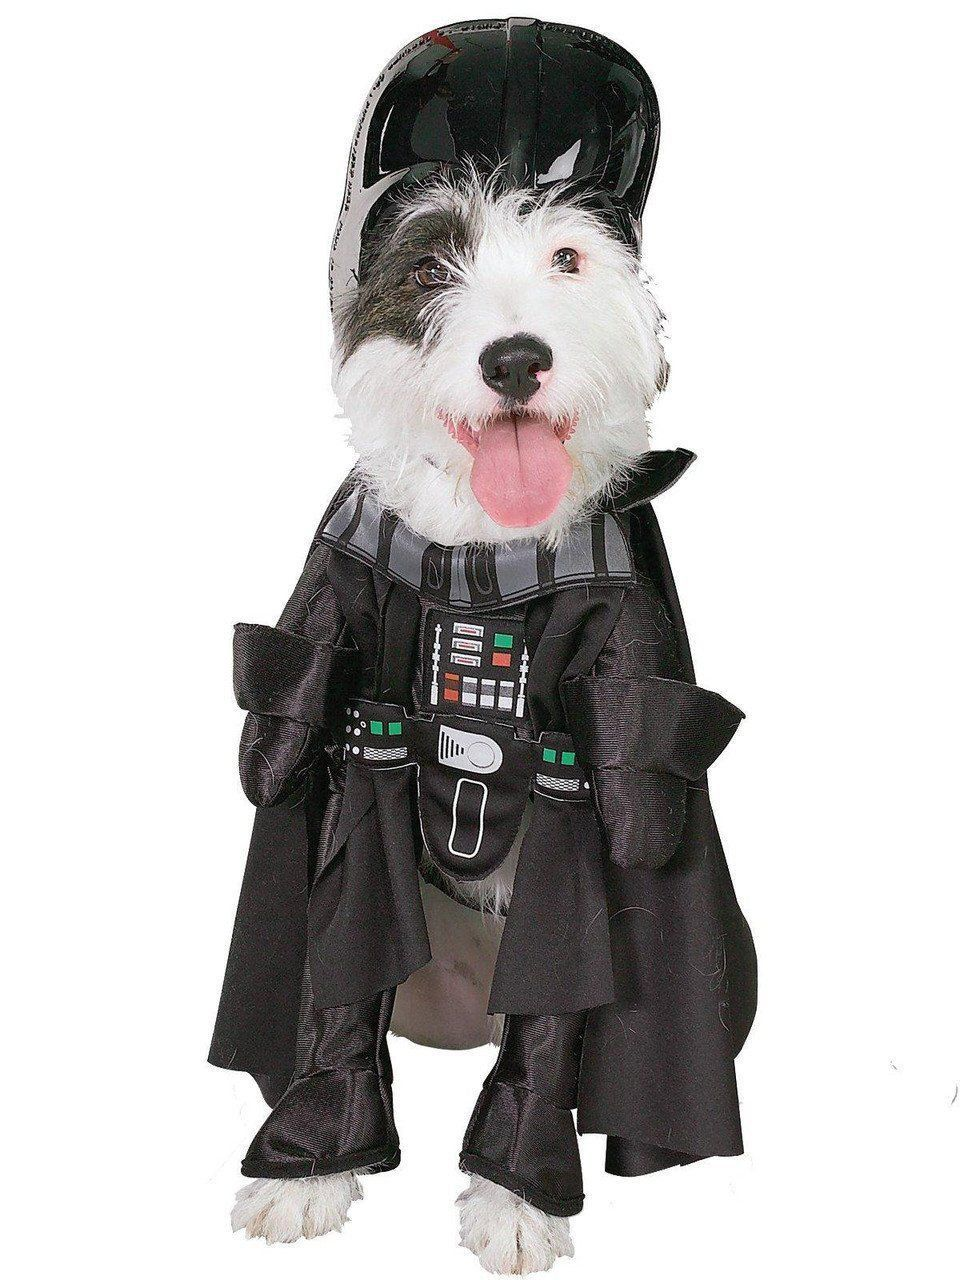 Fantasia Pet Darth Vader: Star Wars (Apenas Venda Online)